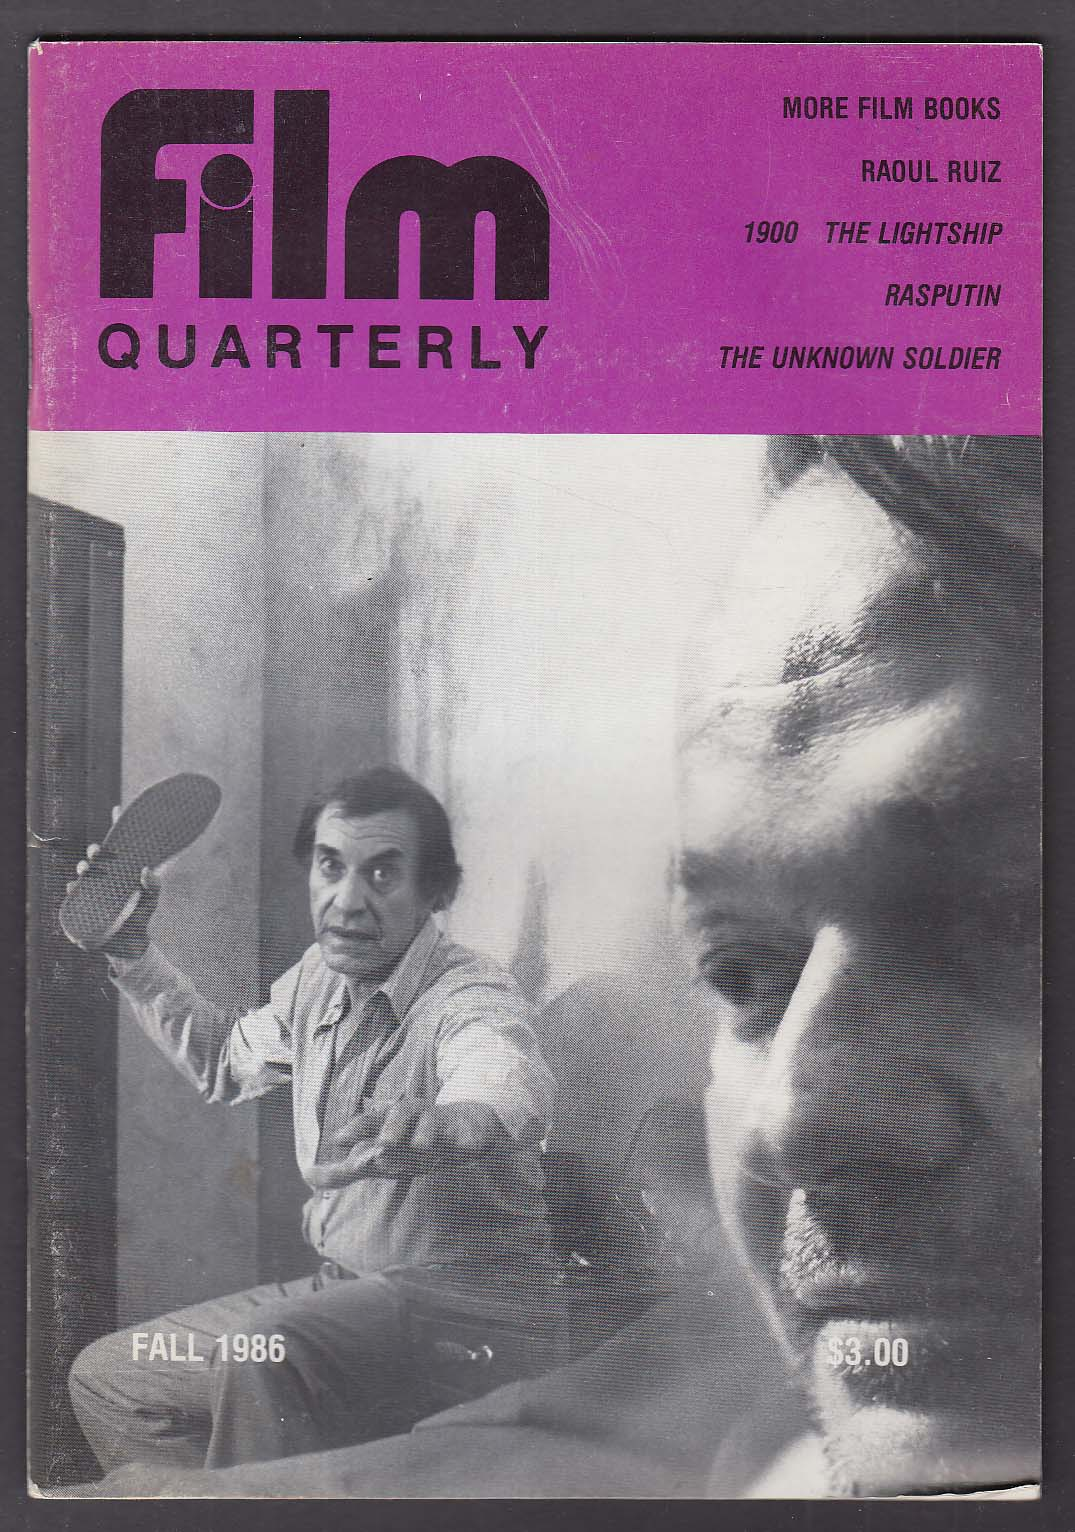 FILM QUARTERLY Raoul Ruiz Bertolucci Lightship Rasputin ++ Fall 1986